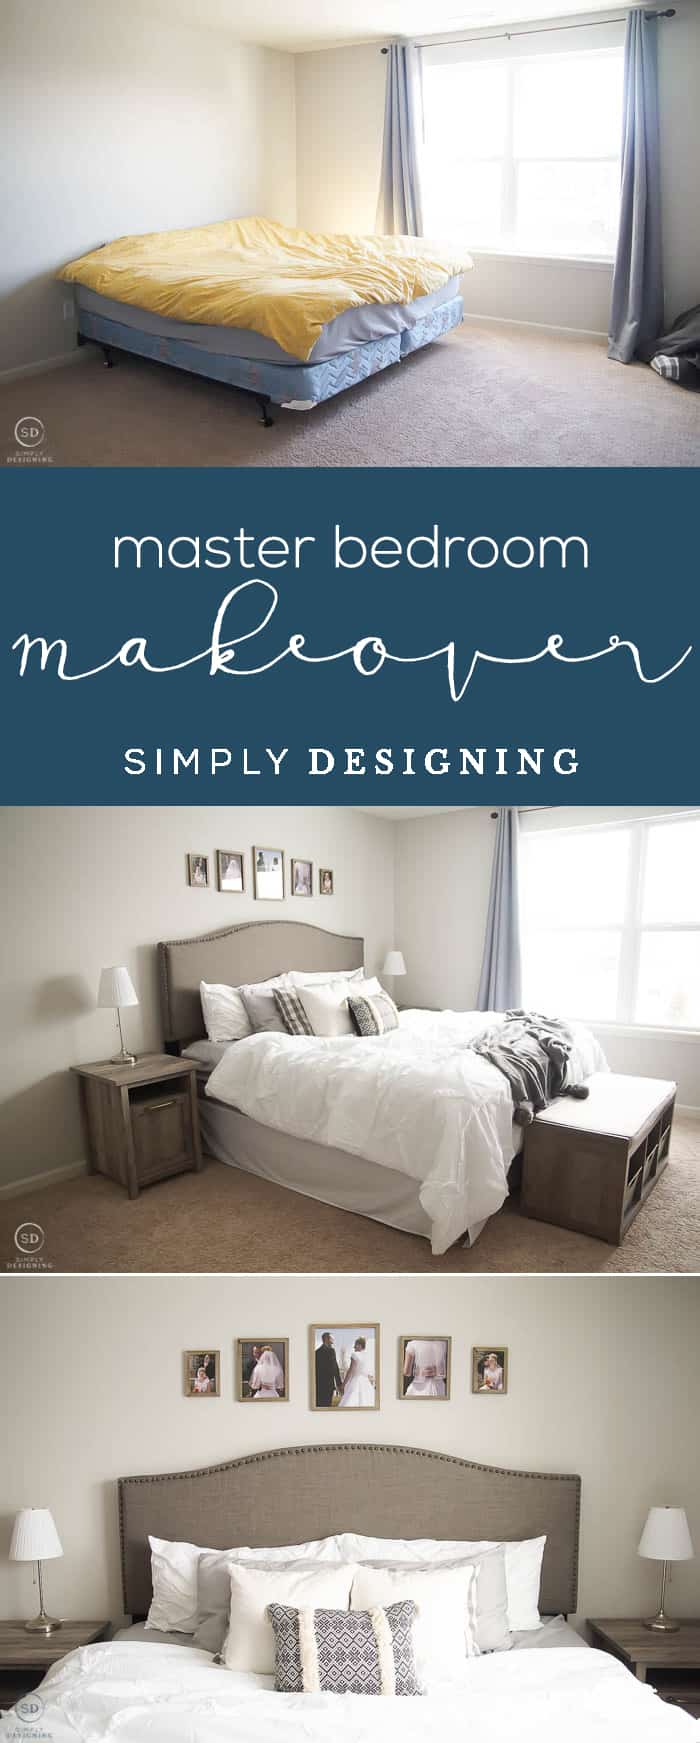 Incredible Master Bedroom Makeover - Before and After